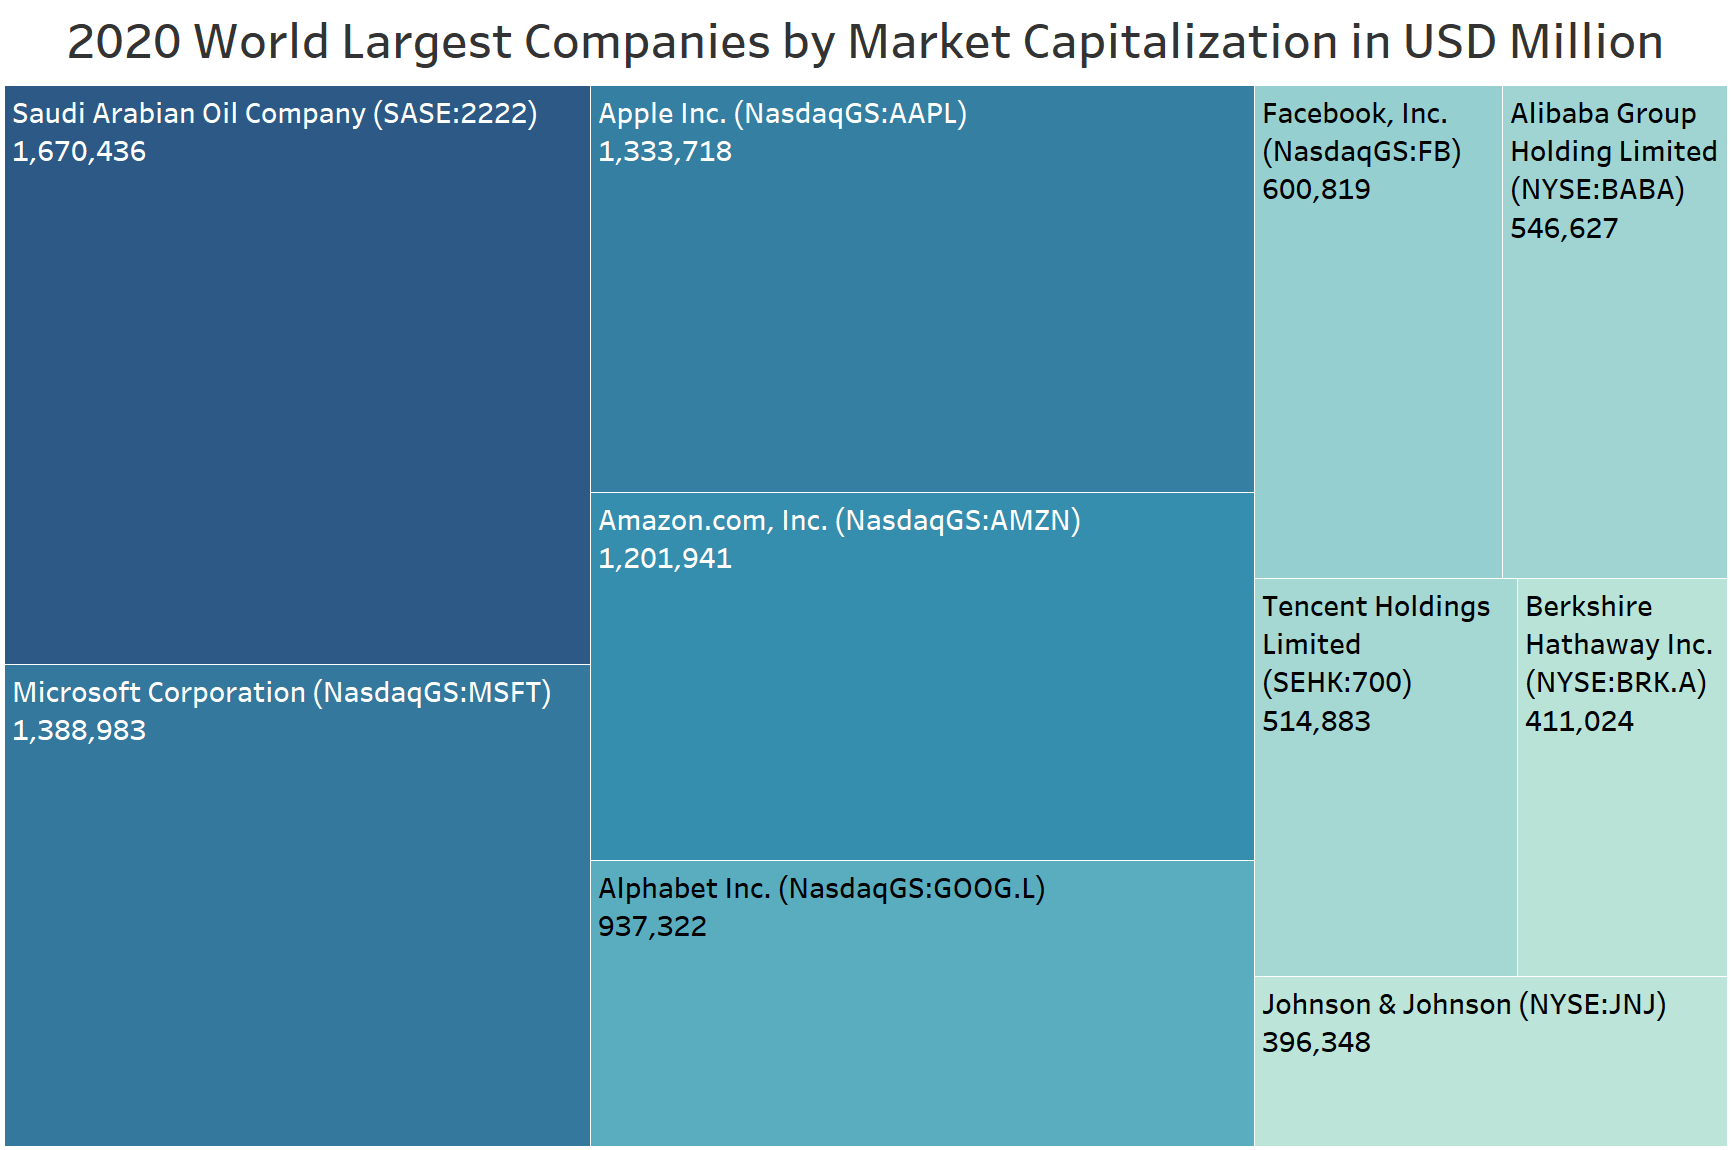 2005 World Largest Companies by market capitalization